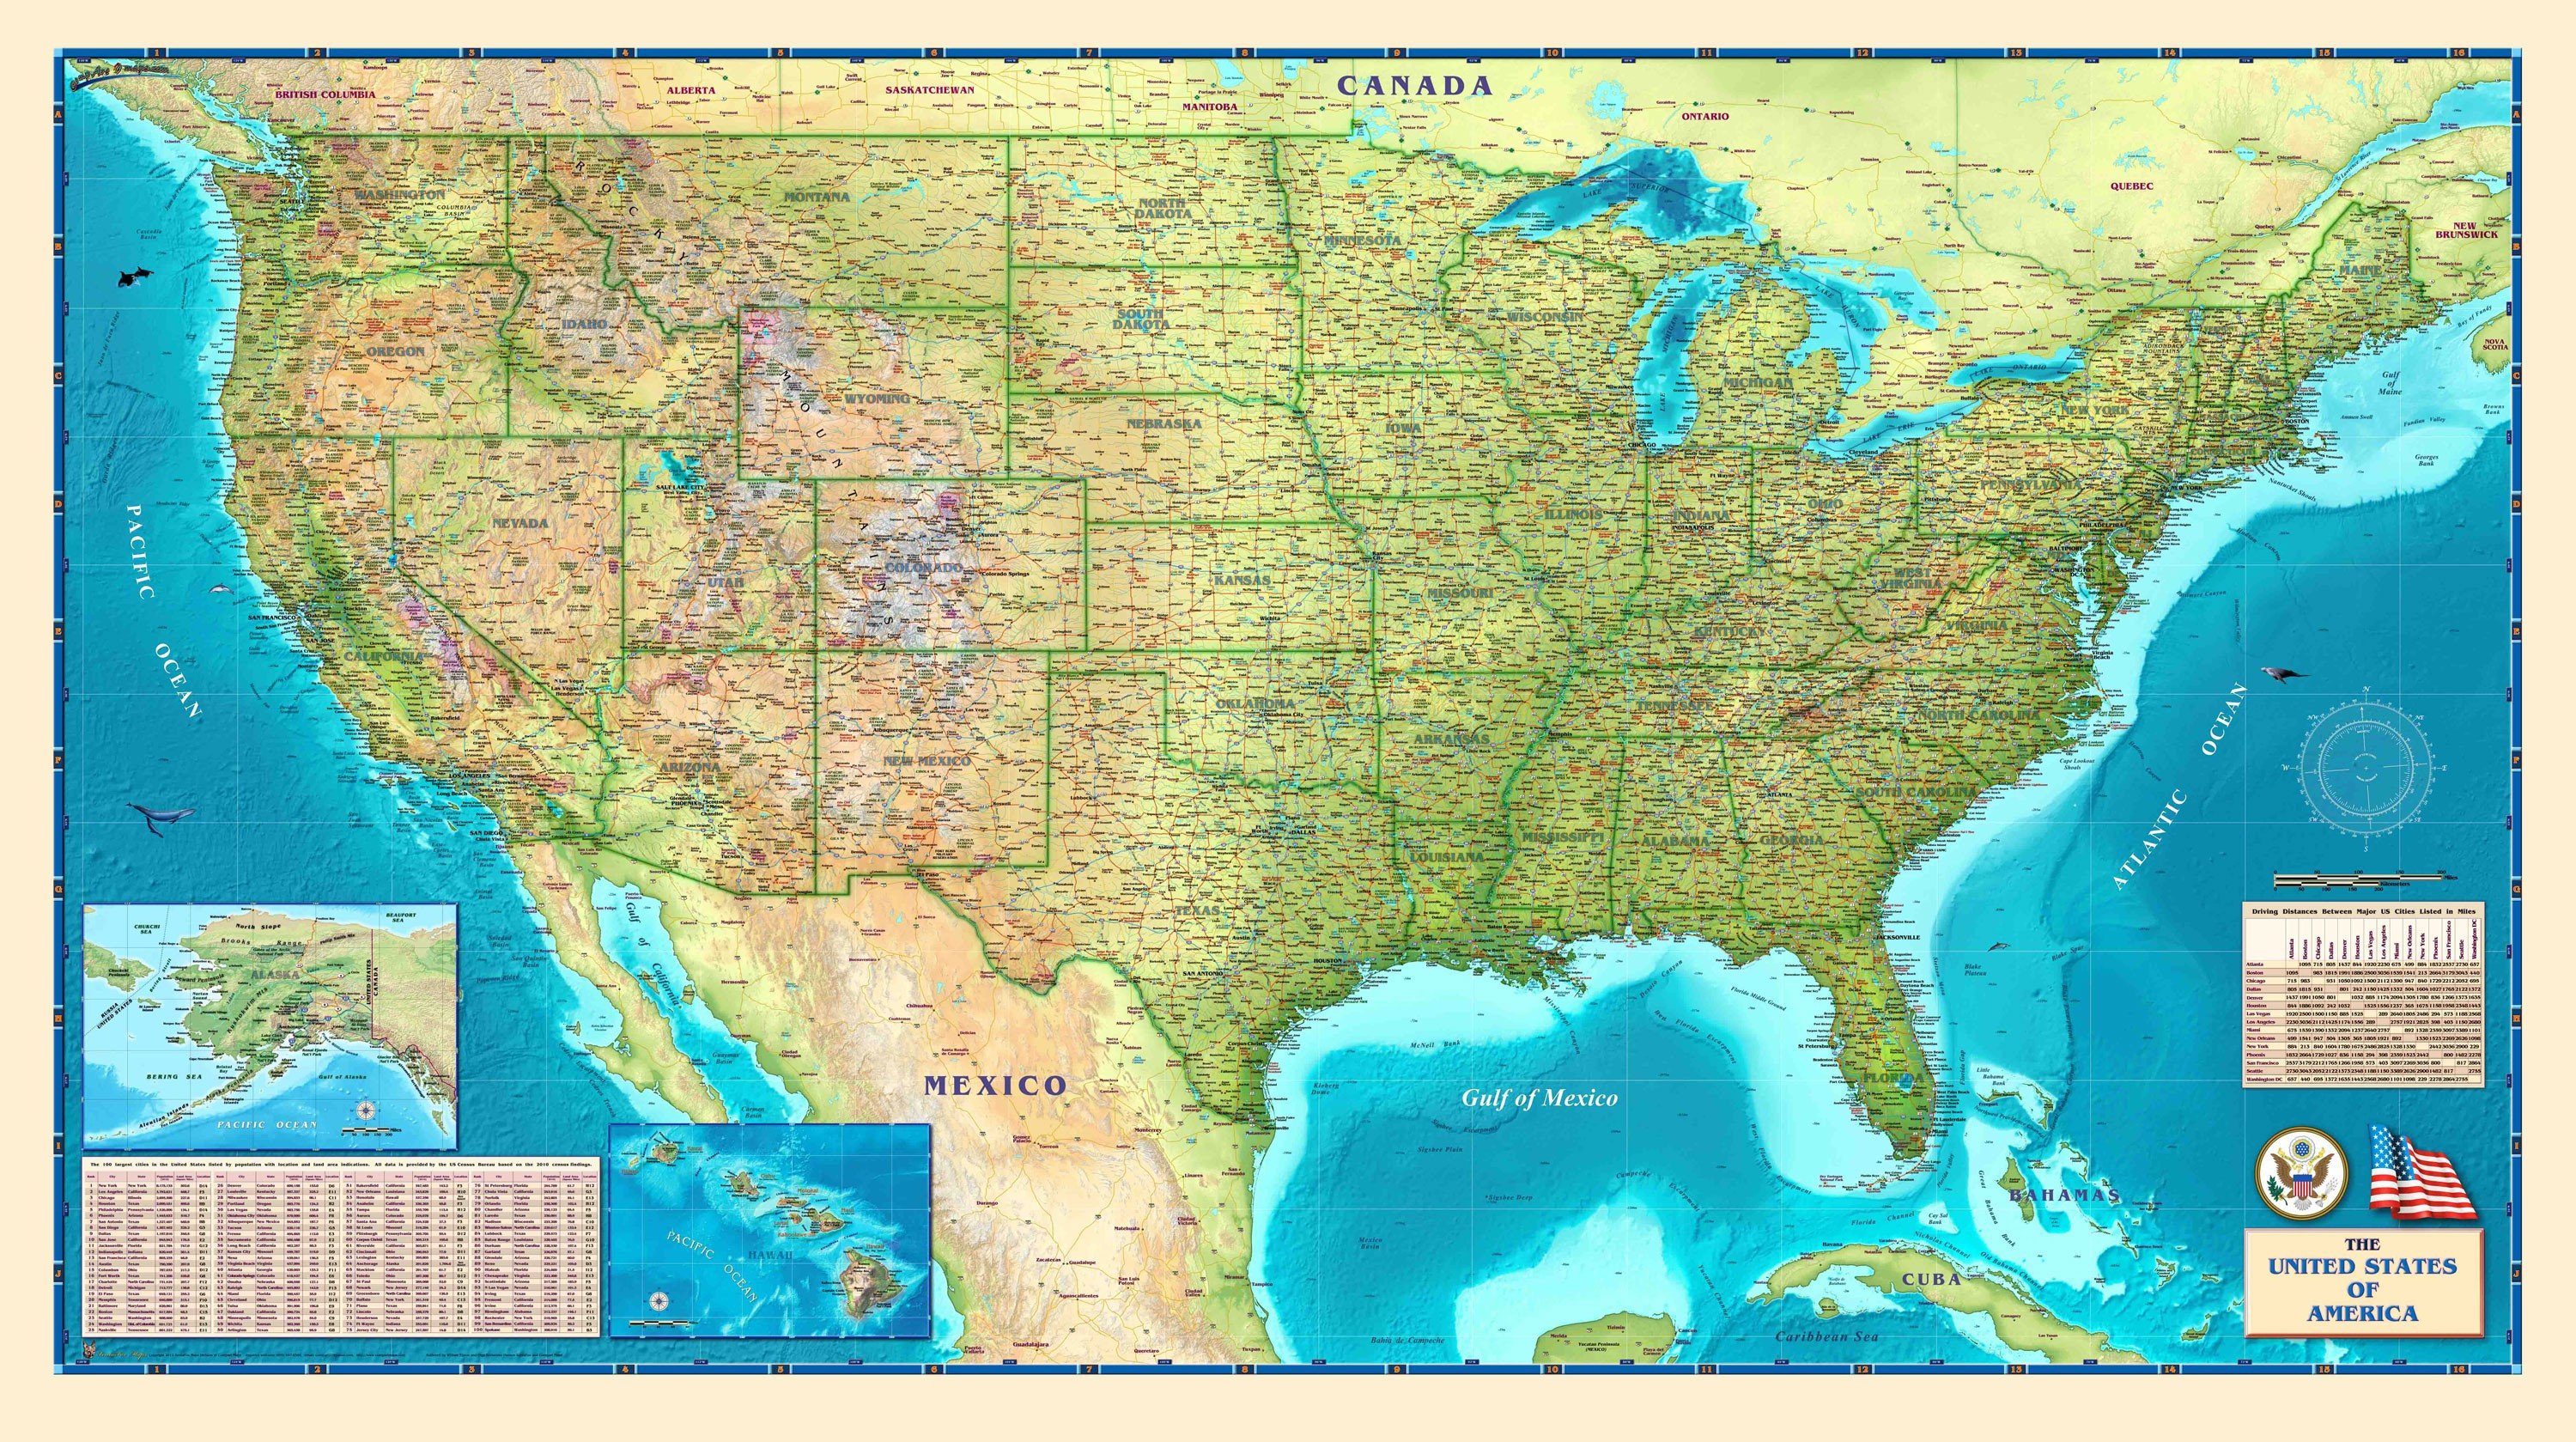 United States Regions Map Printable Refrence Usa Geography Map States Canphv